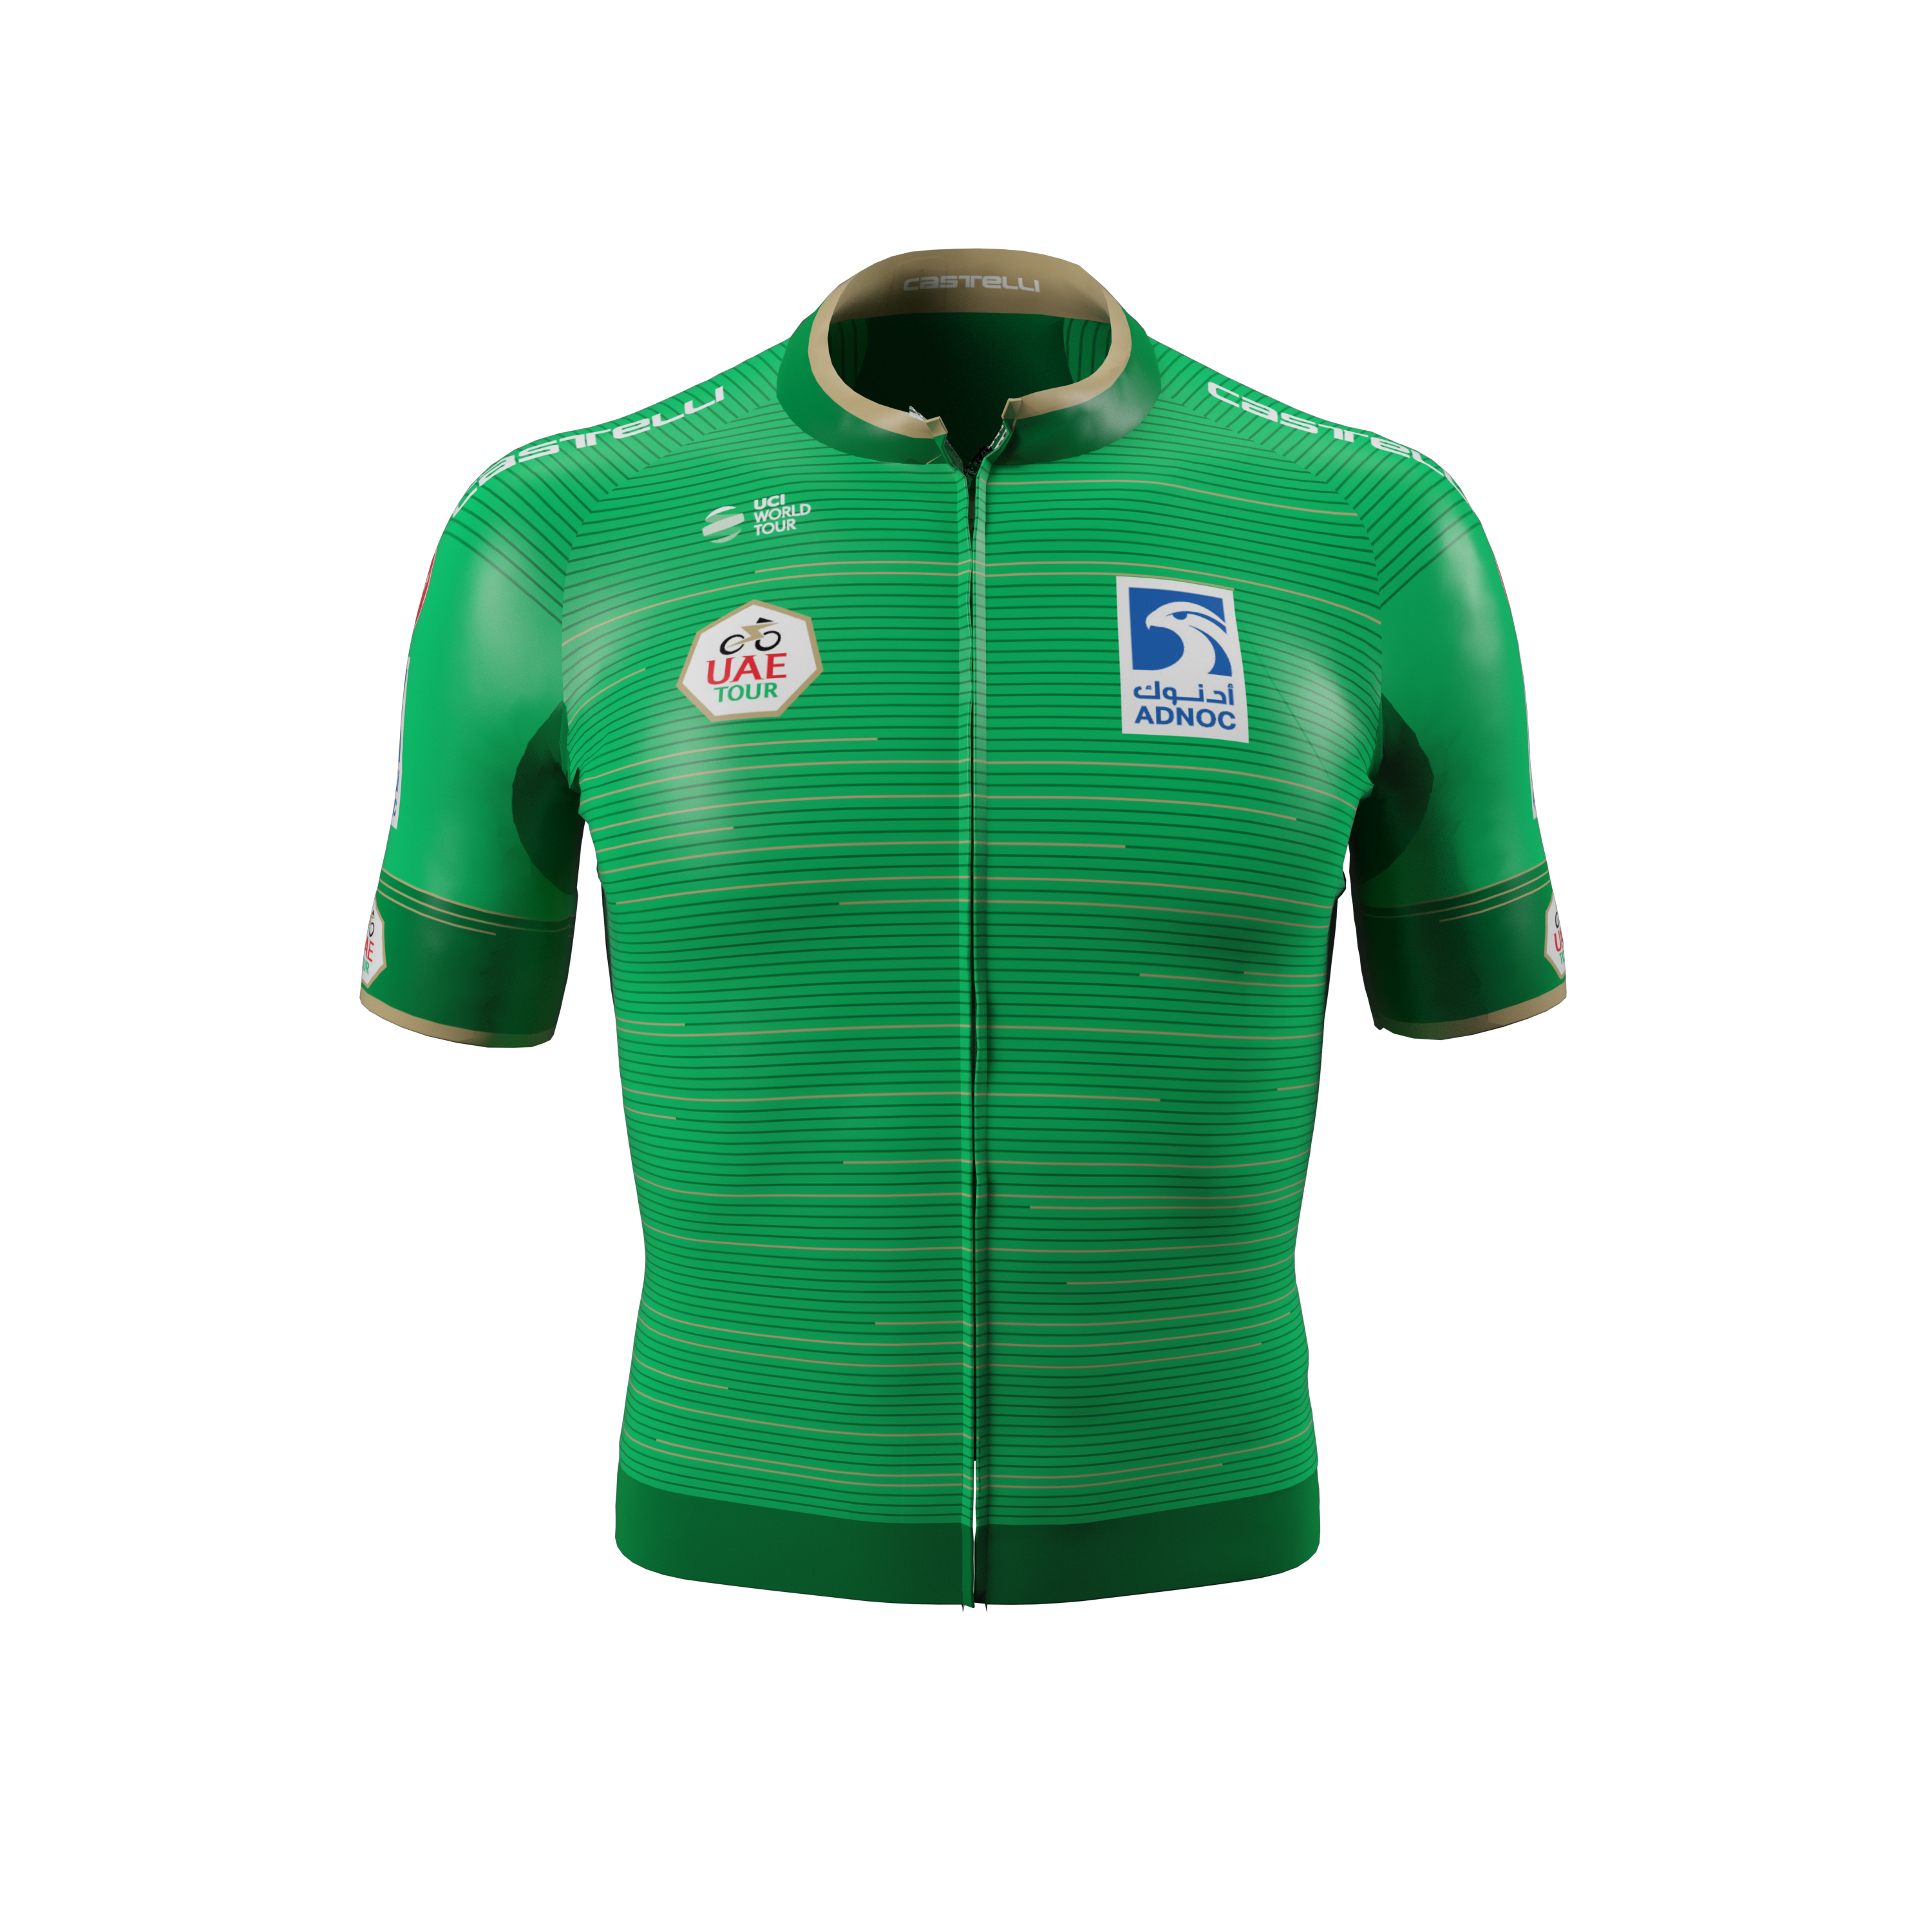 Worn every day, starting from phase 2, for the fastest sprinter, who has obtained the best placements in each phase and intermediate sprints.